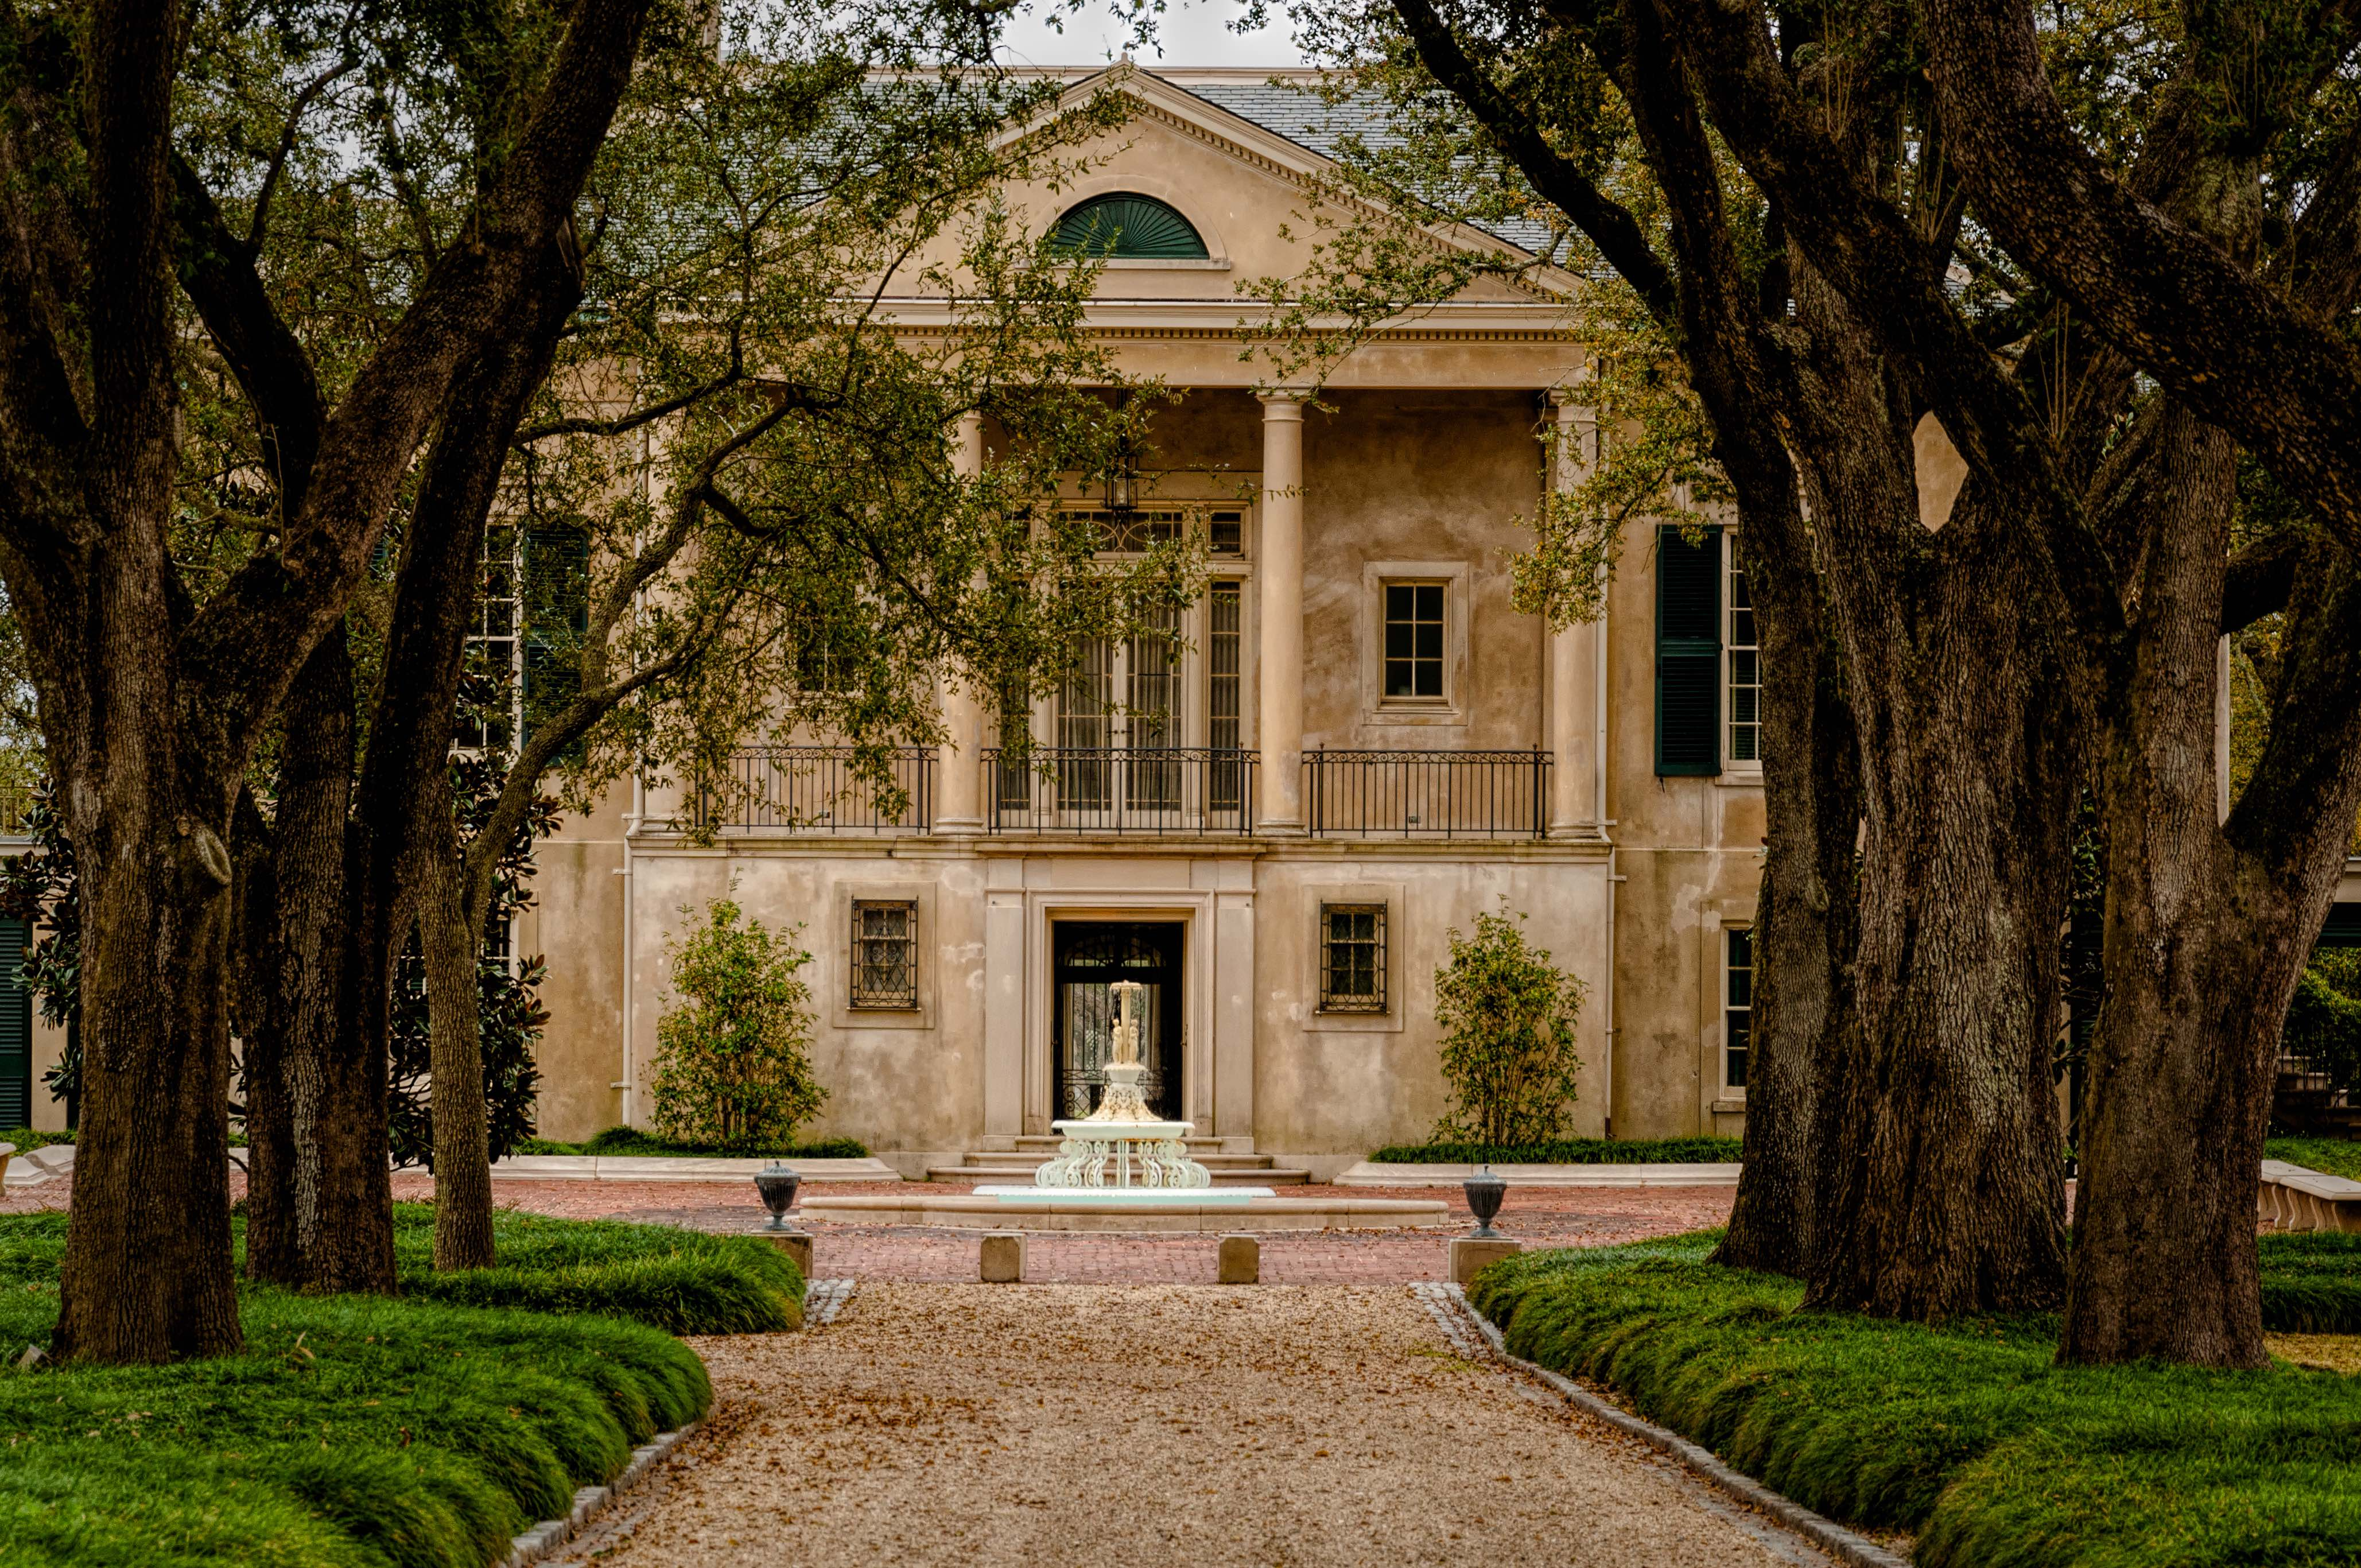 A large historic home in New Orleans that has a path leading up to its entrance through trees.